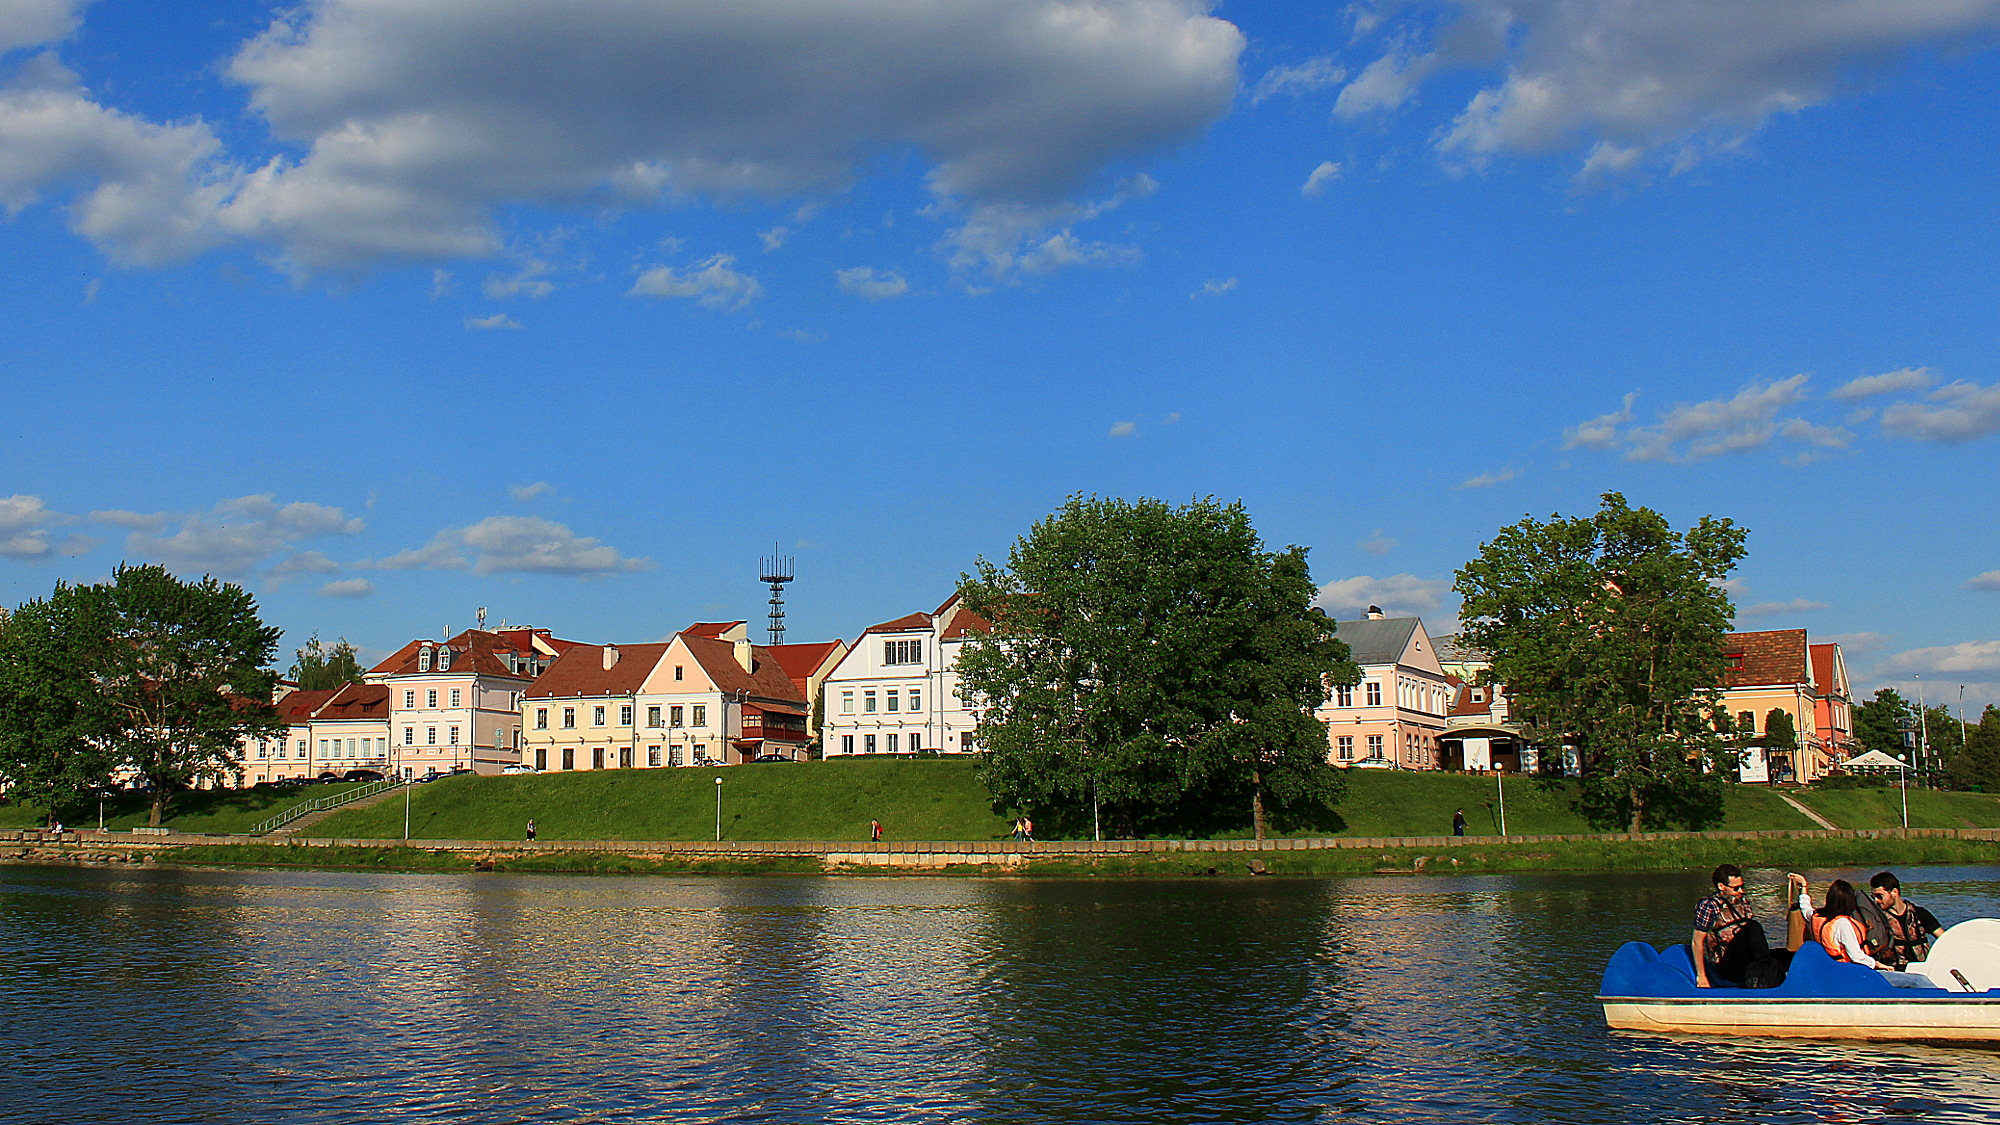 Troitskoye Predmestie or the Trinity Suburb is the old town of Minsk. Pictured on a beautiful sunny day with the river in front. Hostel Trinity is one of the few hostels for backpacking in Belarus.